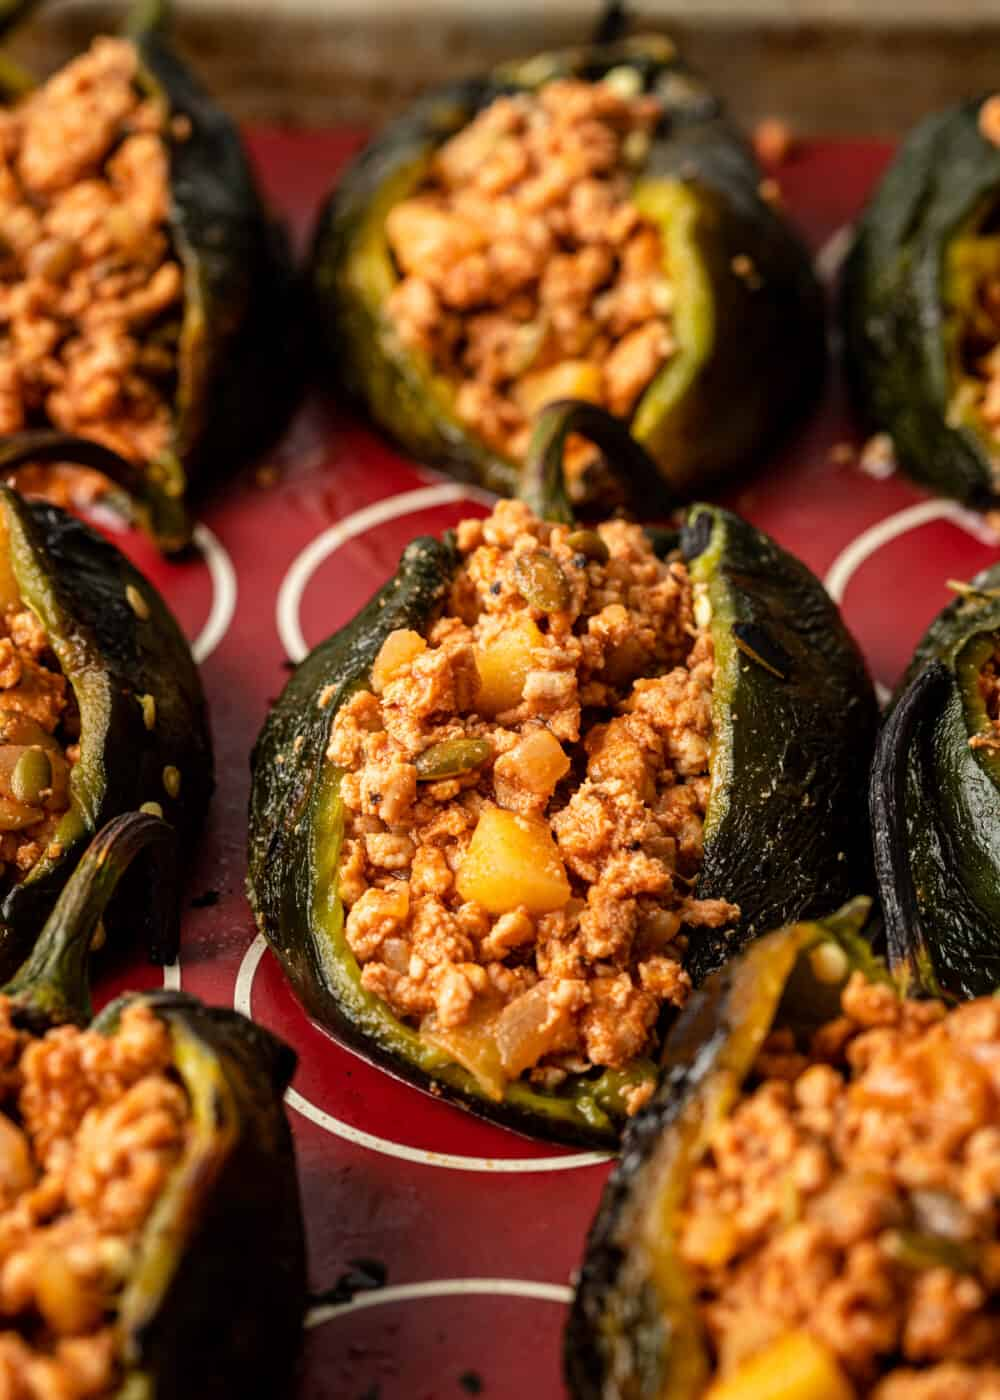 poblano chiles on baking sheet stuffed with ground meat